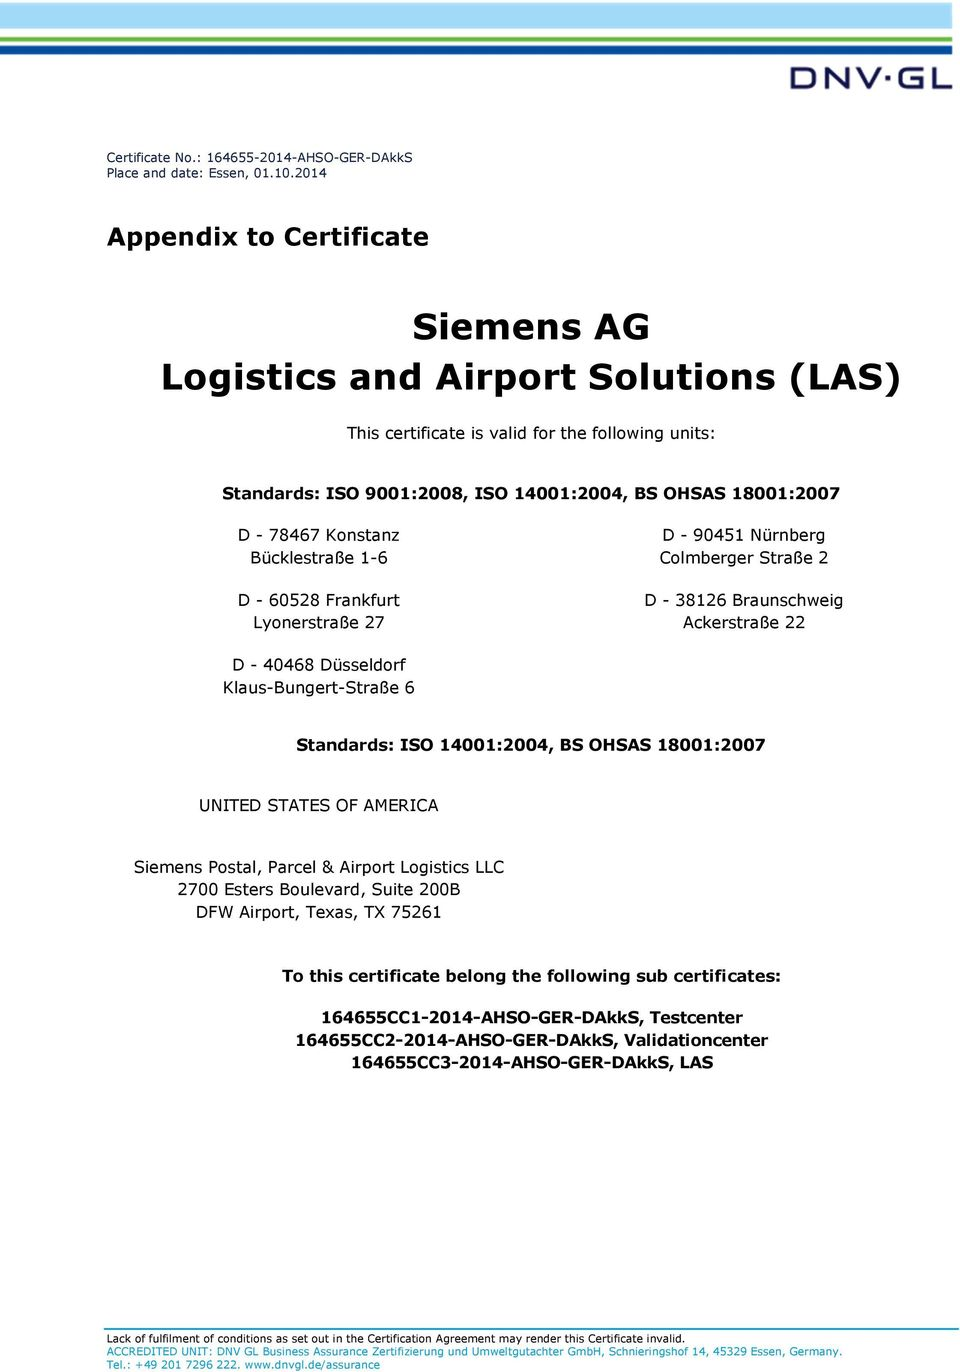 AMERICA Siemens Postal, Parcel & Airport Logistics LLC 2700 Esters Boulevard, Suite 200B DFW Airport, Texas, TX 75261 To this certificate belong the